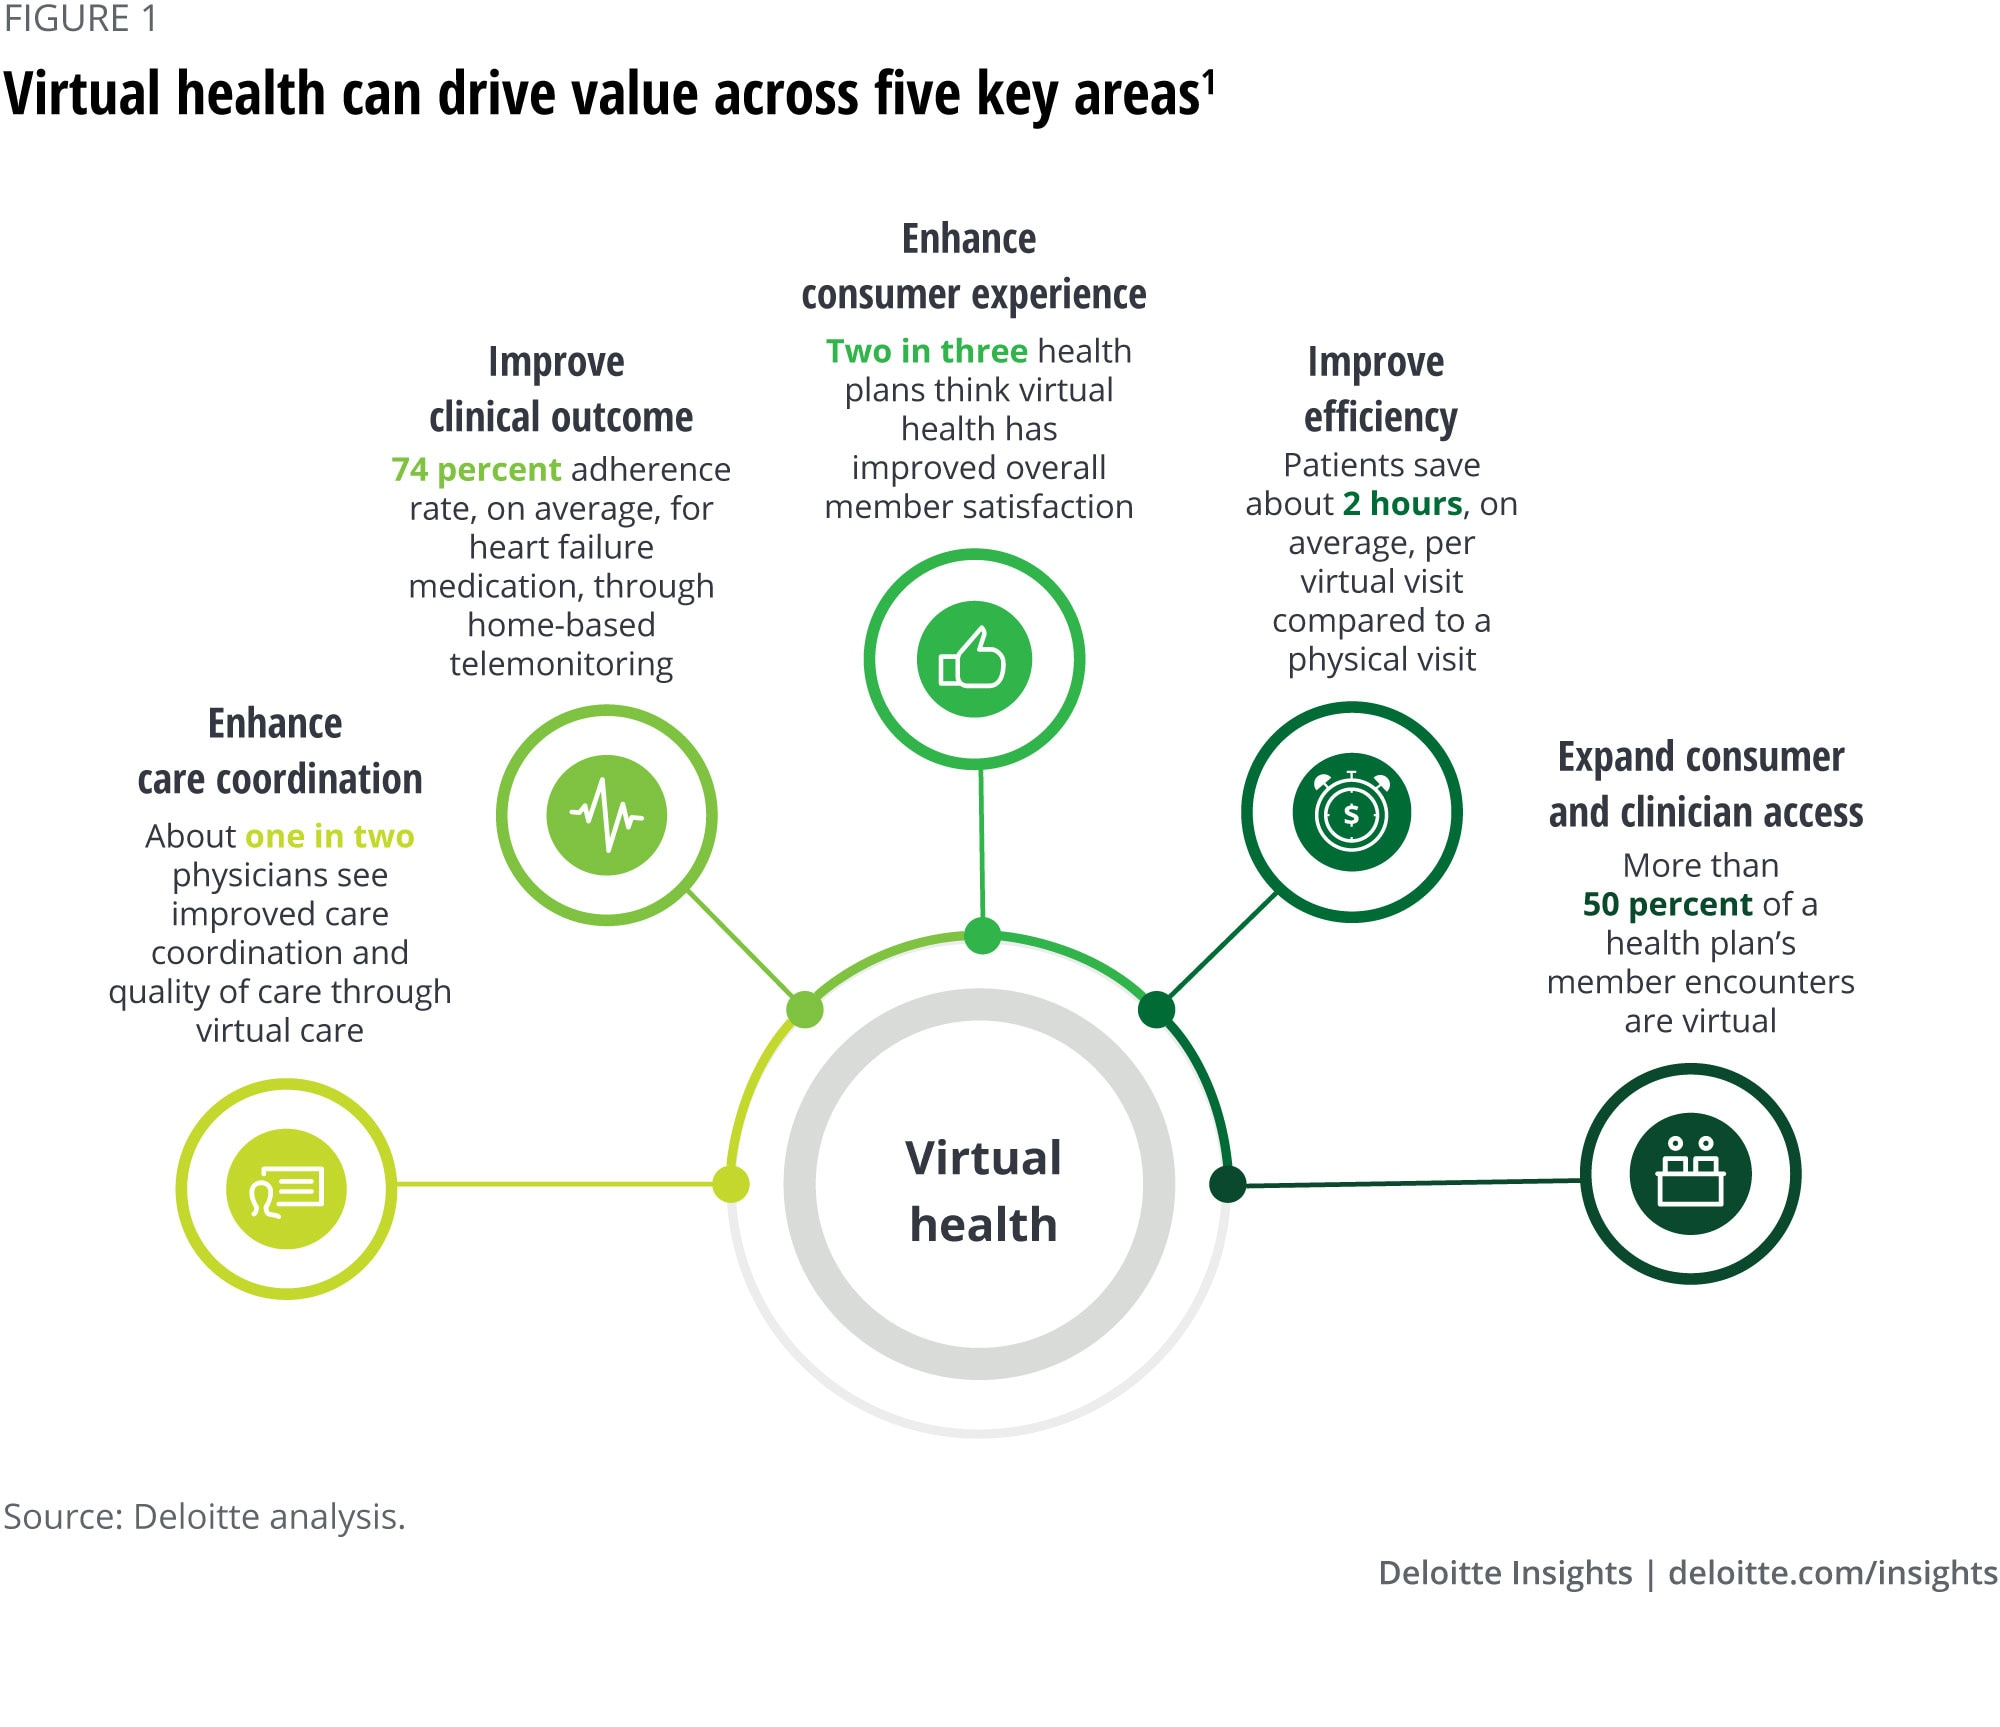 Virtual health can drive value across five key areas